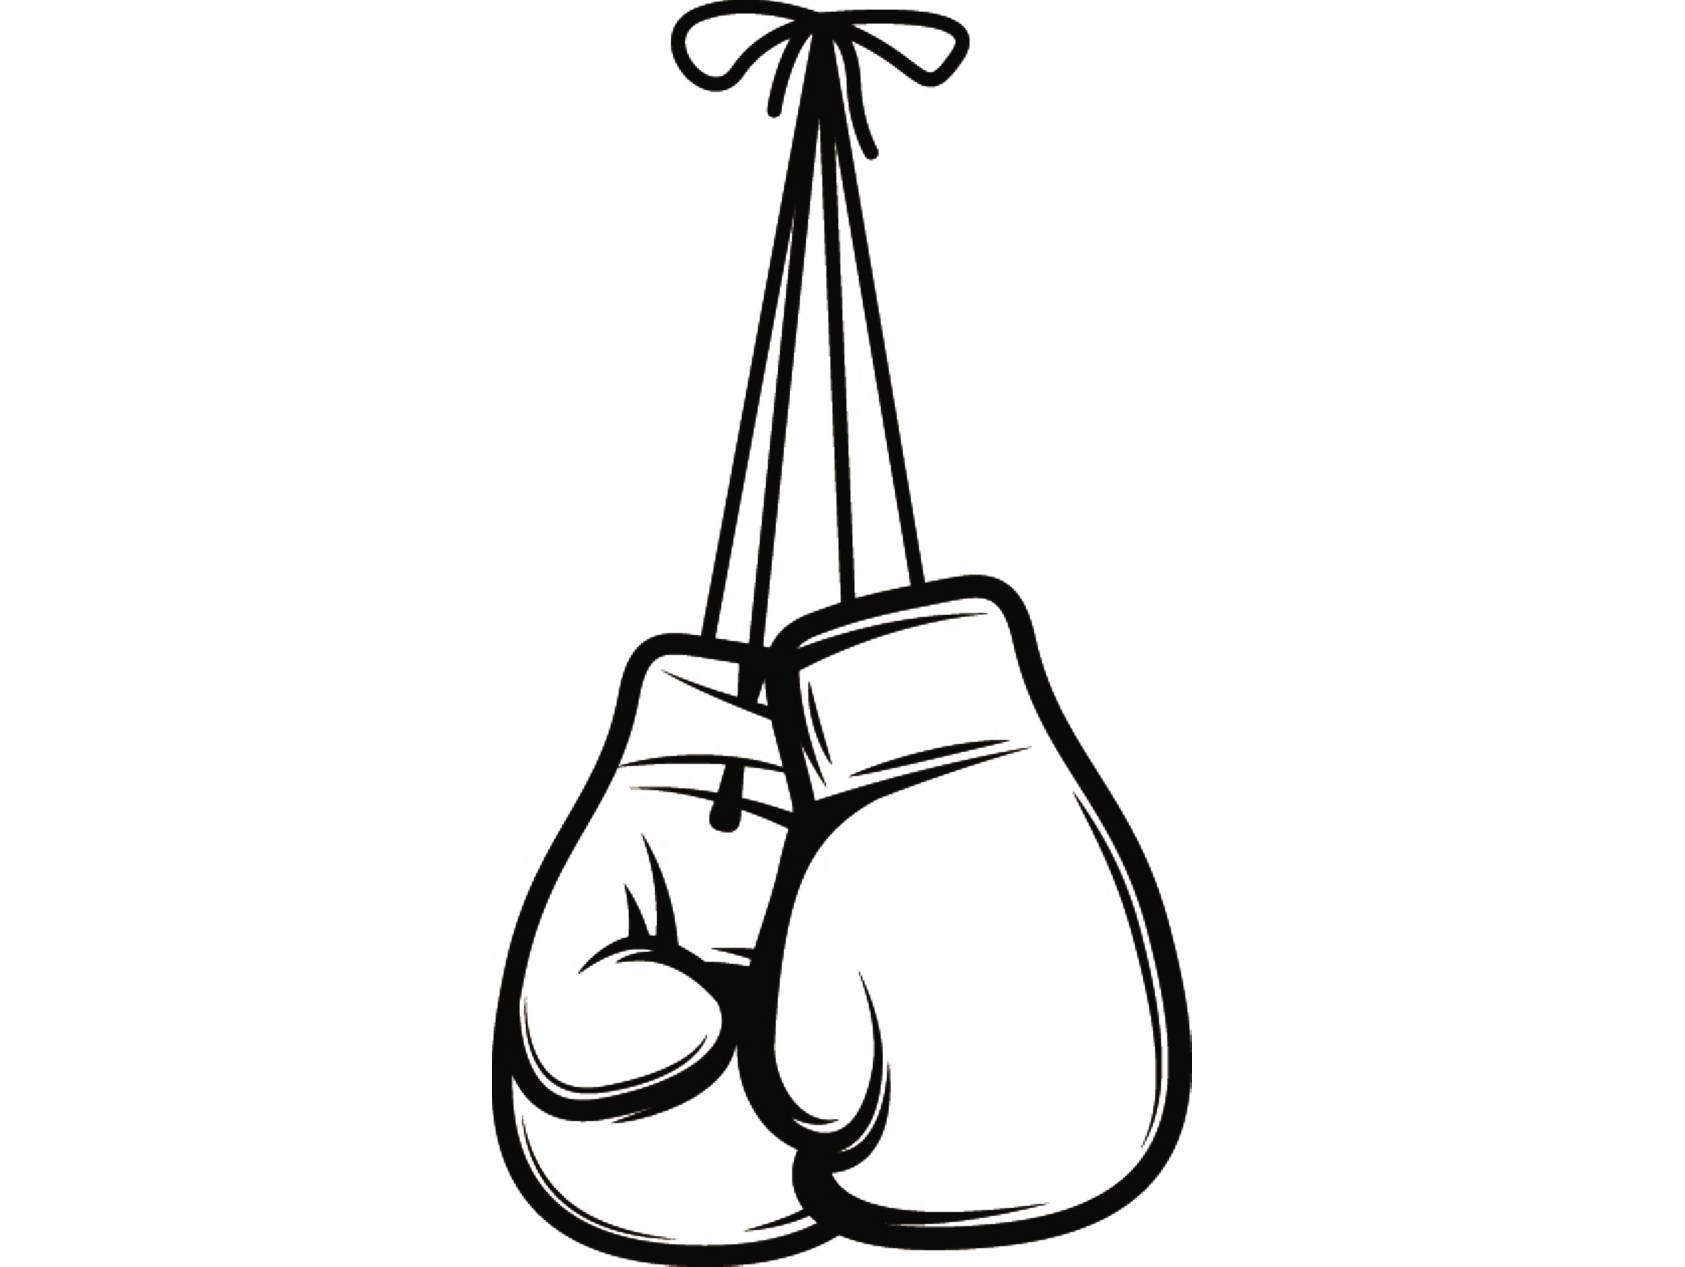 Boxing Gloves Punching - Download Free Vectors, Clipart ...  |Boxing Gloves Vector Clipart